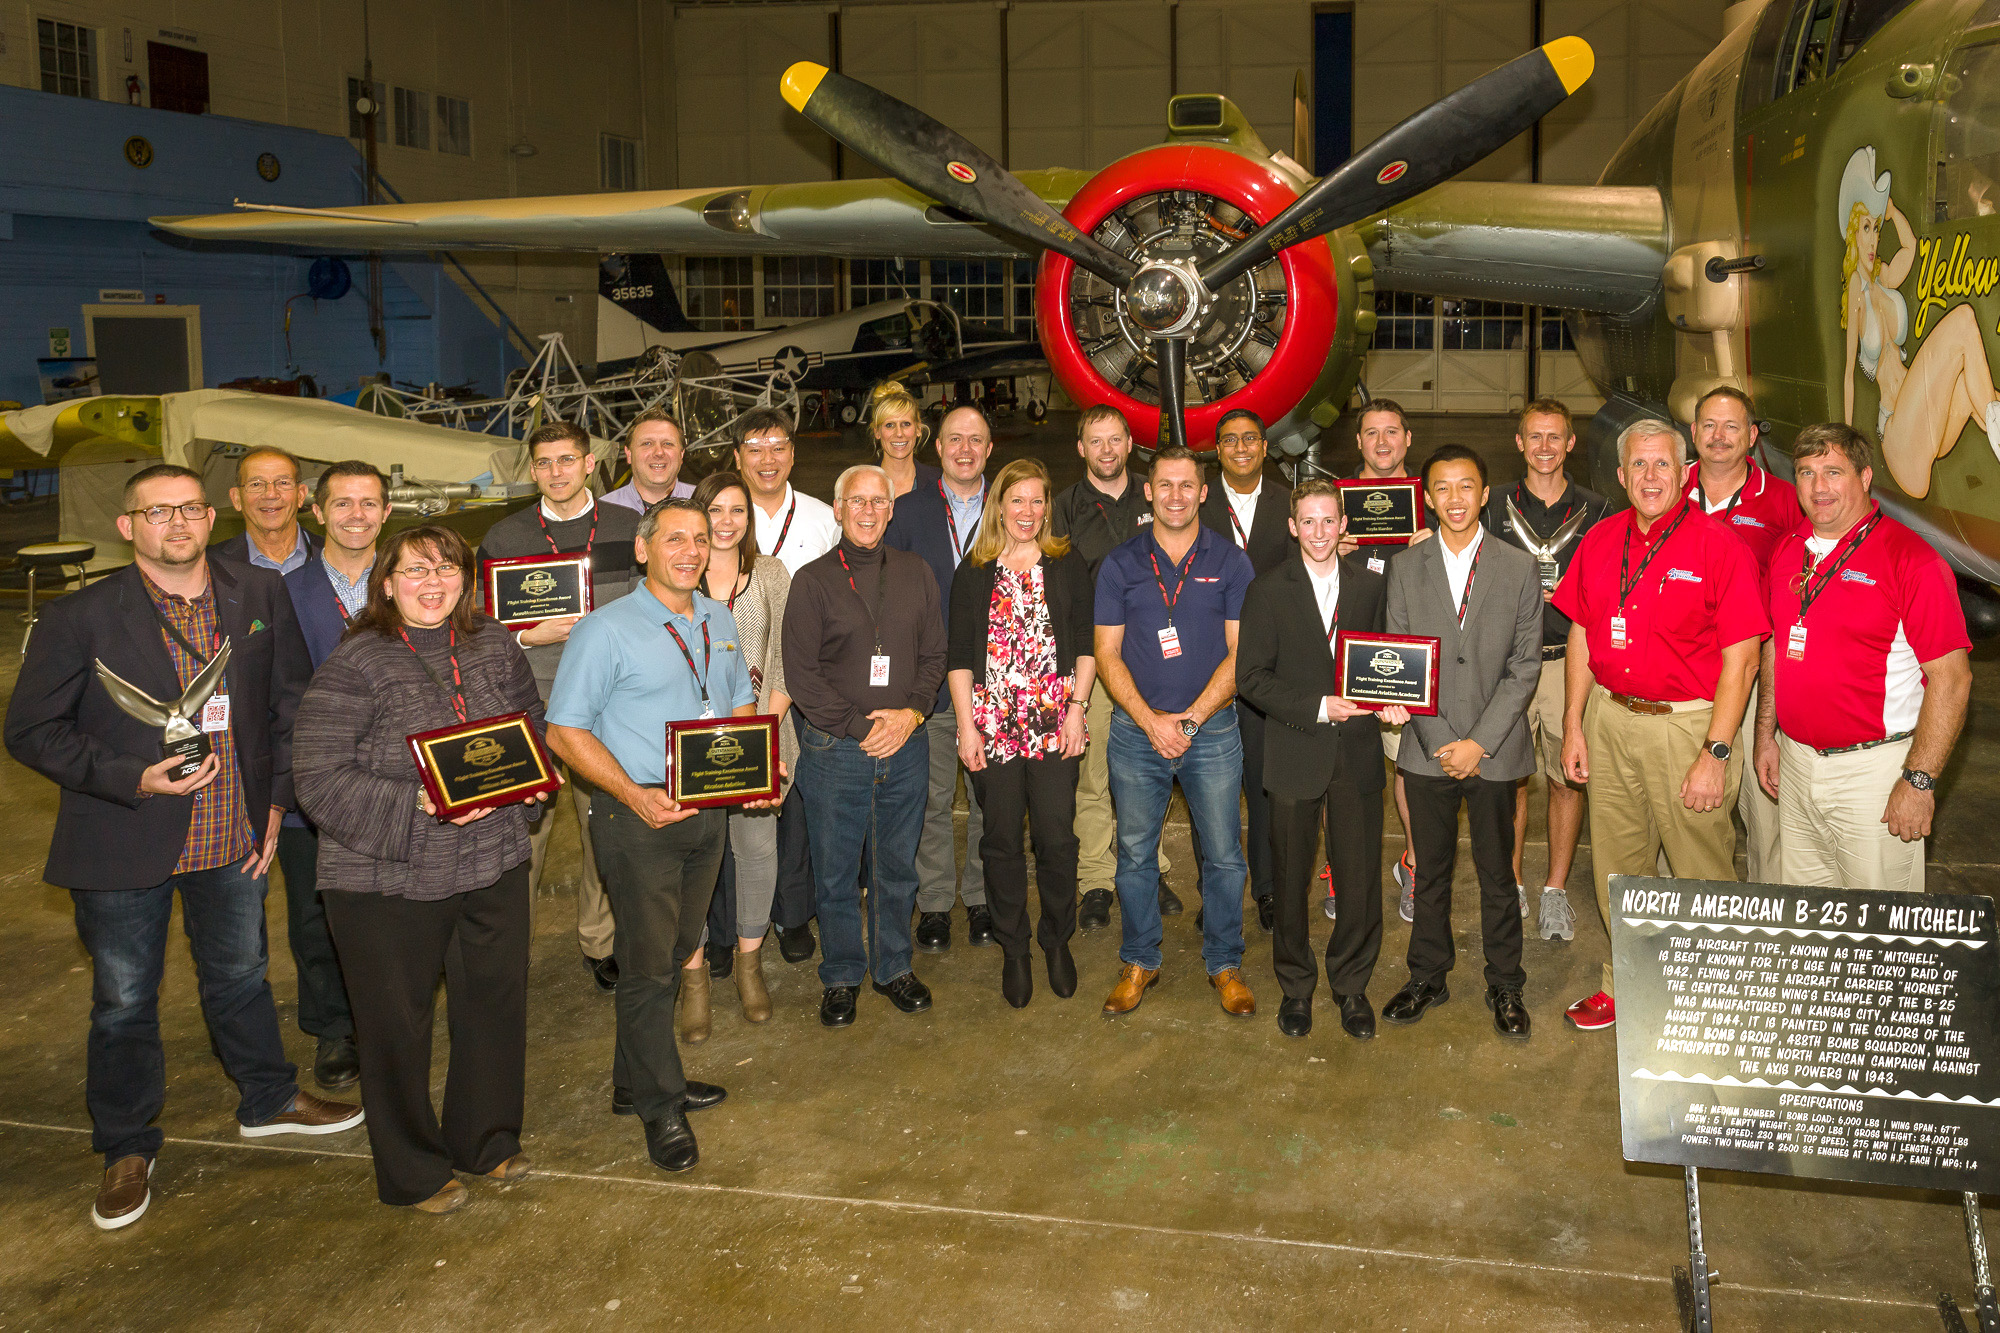 Winners of AOPA's 2016 Flight Training Excellence Awards gather for a group photo during Redbird Flight Simulation's annual Migration conference in San Marcos, Texas, Oct 25. Photo by Michael Hart.